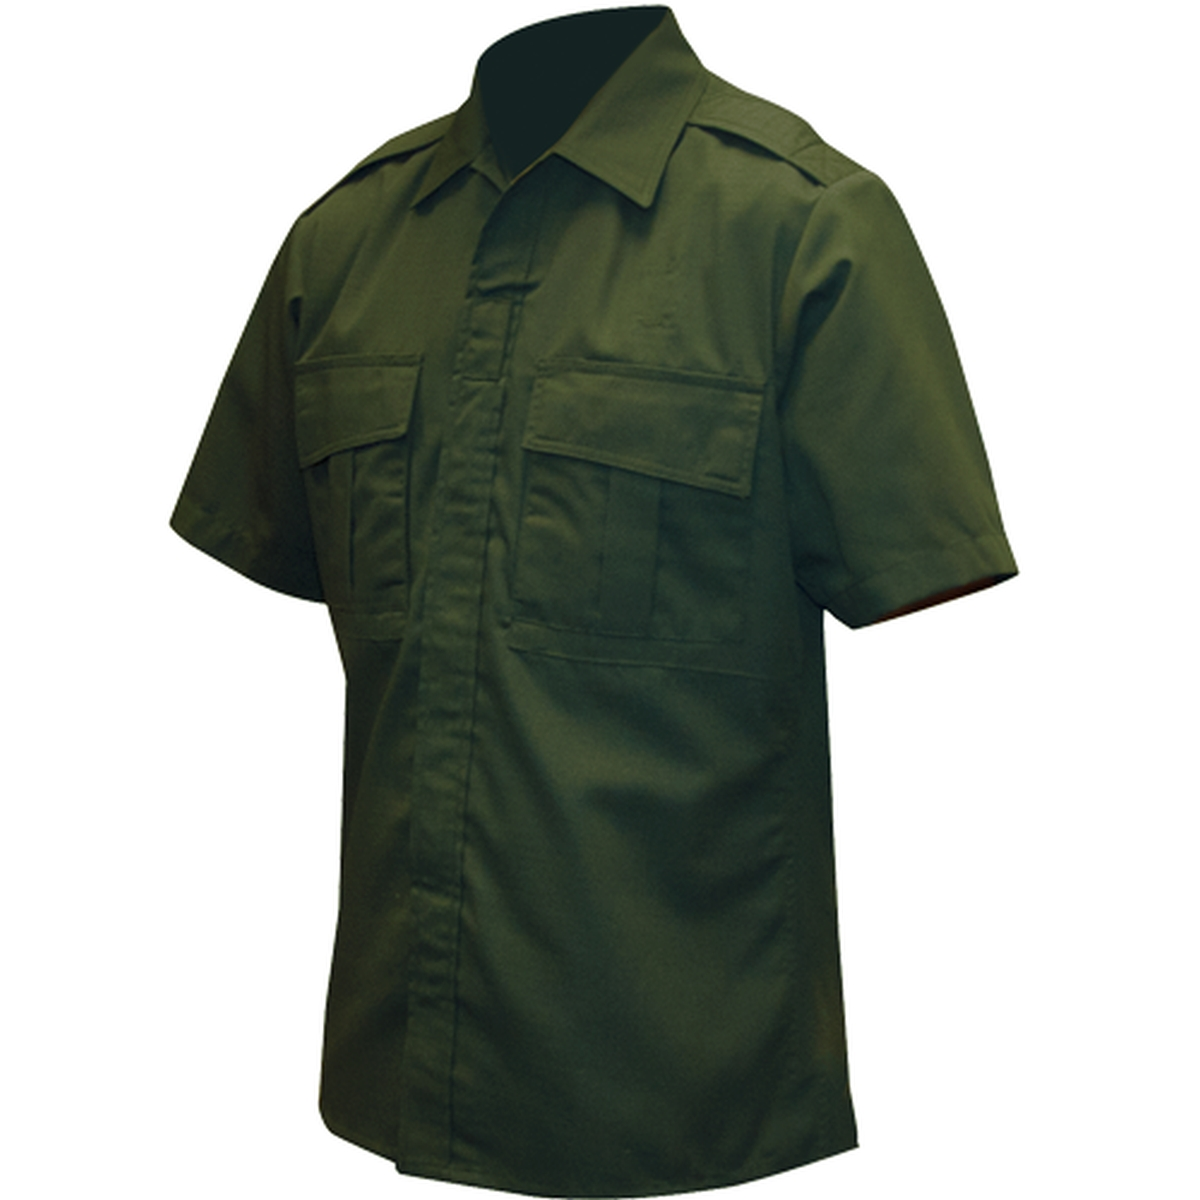 Short Sleeve B.DU Tactical Shirt